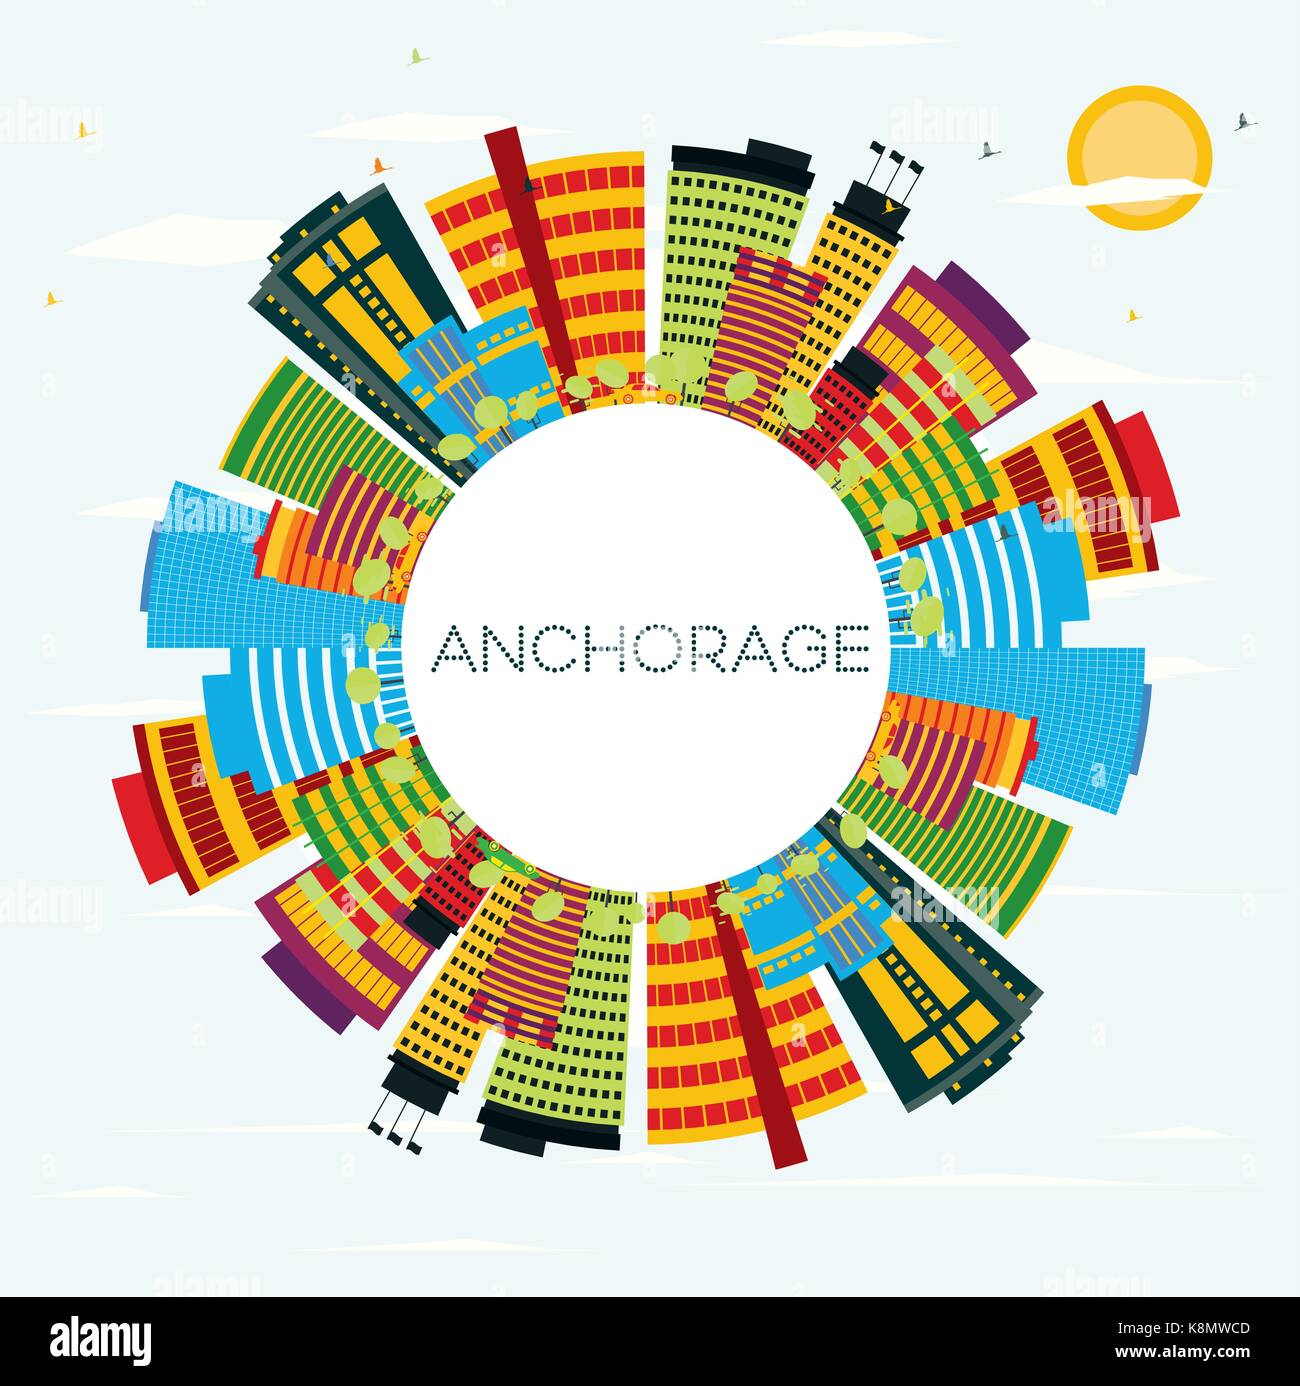 Color art anchorage - Anchorage Skyline With Color Buildings Blue Sky And Copy Space Business Travel And Tourism Concept Image For Presentation Banner Placard And Web Si